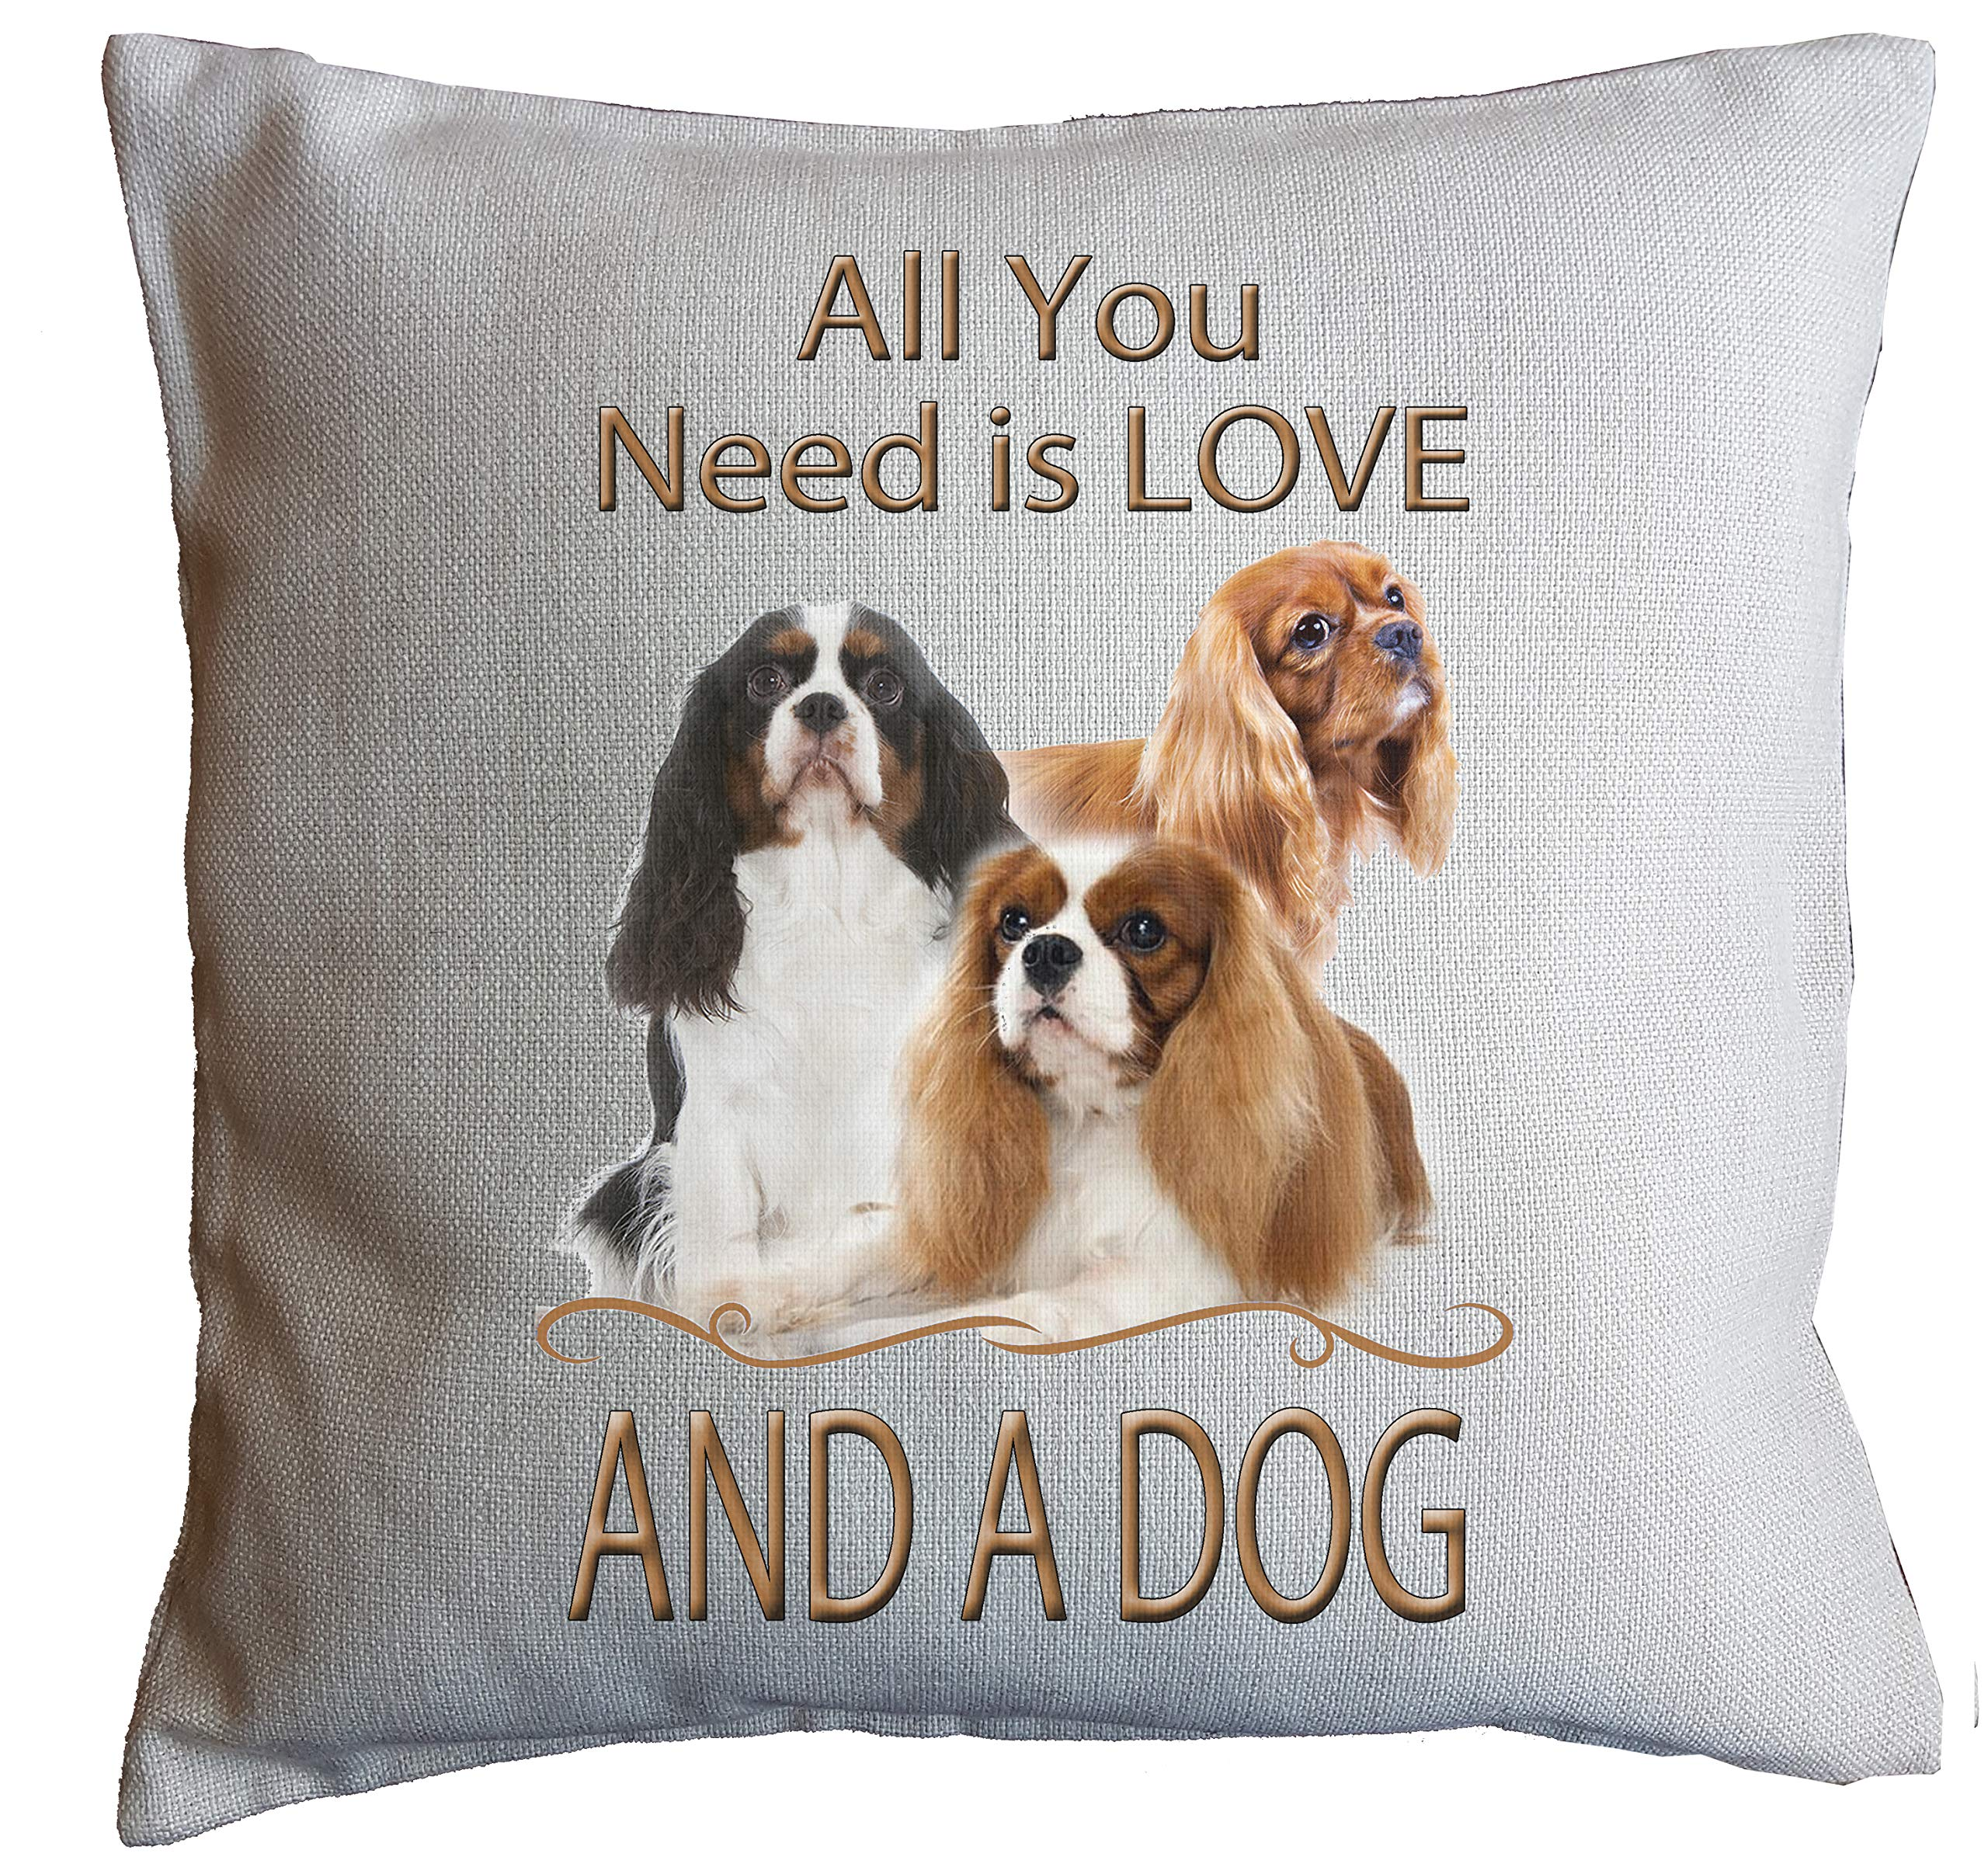 Cavalier King Charles Spaniel Dog Cushion. All You Need is Love and a Dog. Linen Effect. CAN BE Personalised. 40CMX40CM Concealed Zip, Machine Washable. (Complete Cushion)